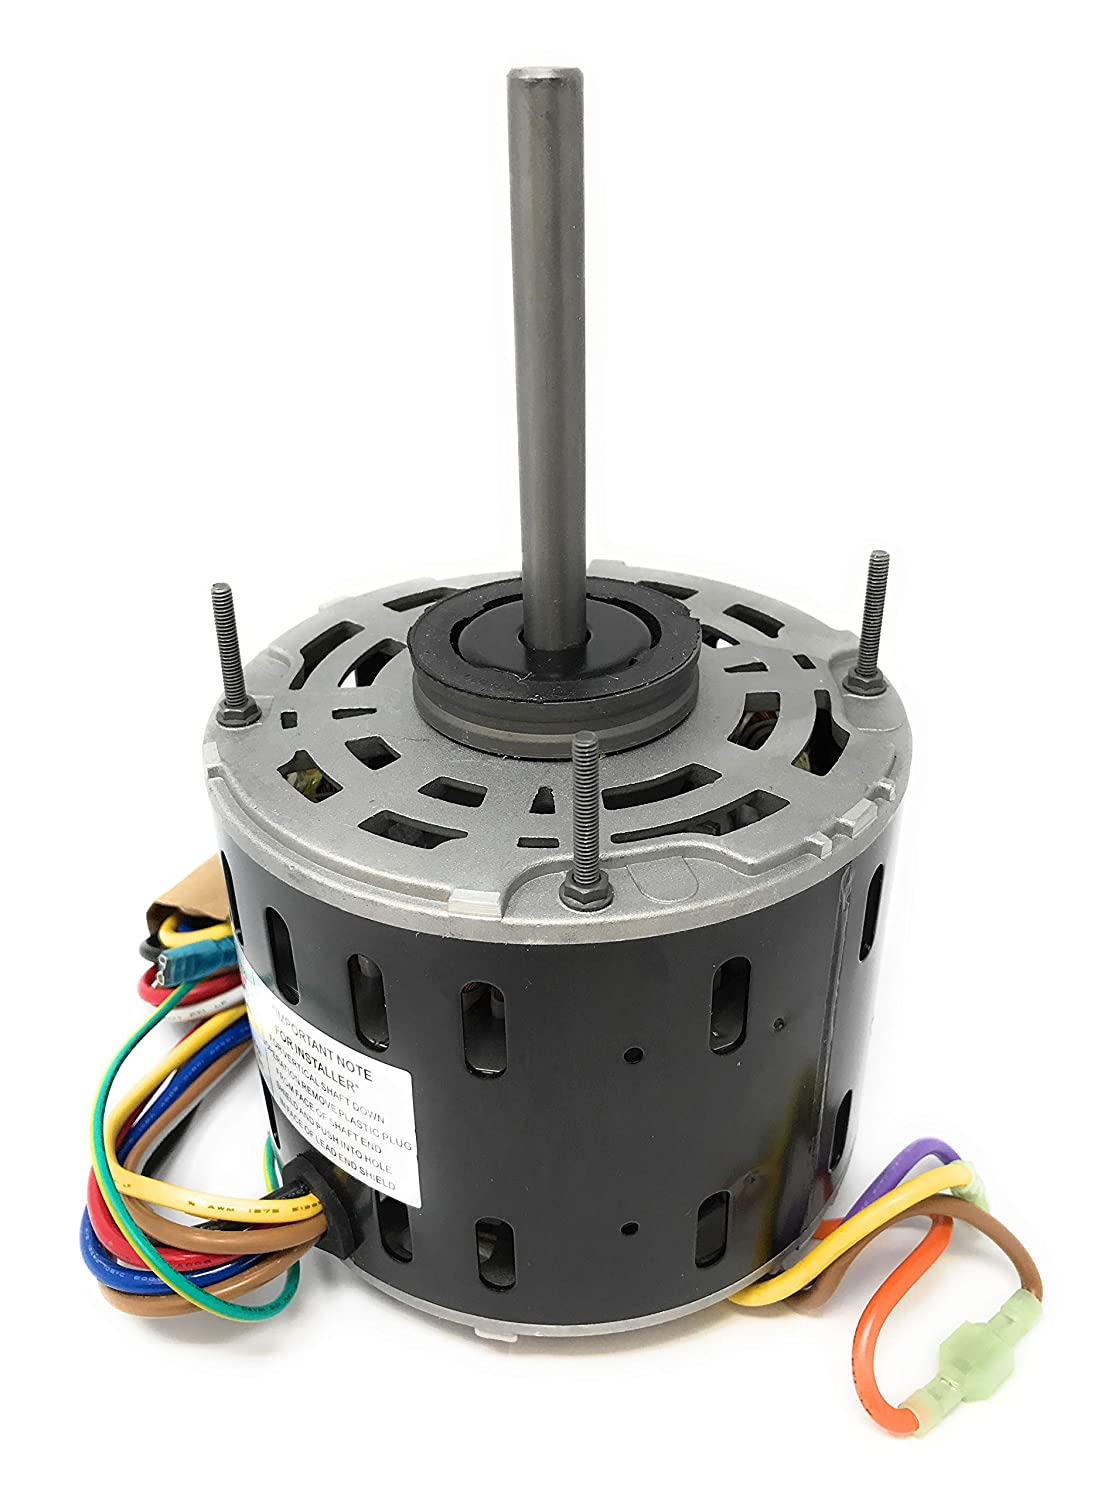 A1587, 1/2HP Furnace Blower Motor, 115V, 1075RPM